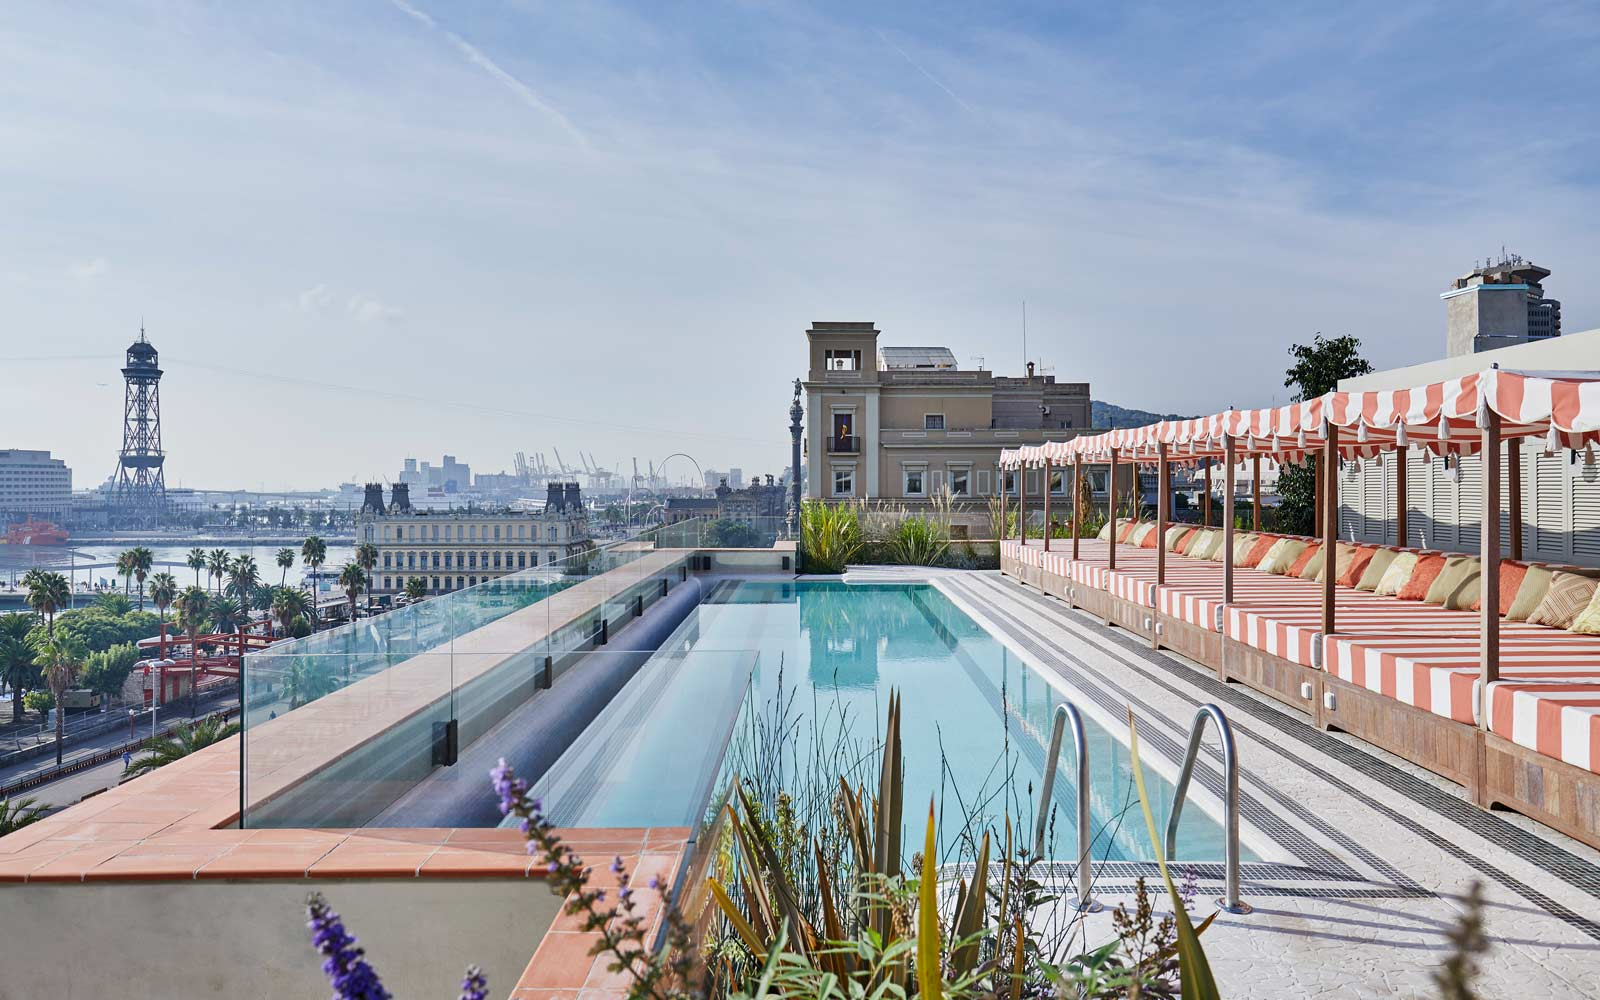 Pool at the Soho House, in Barcelona, Spain